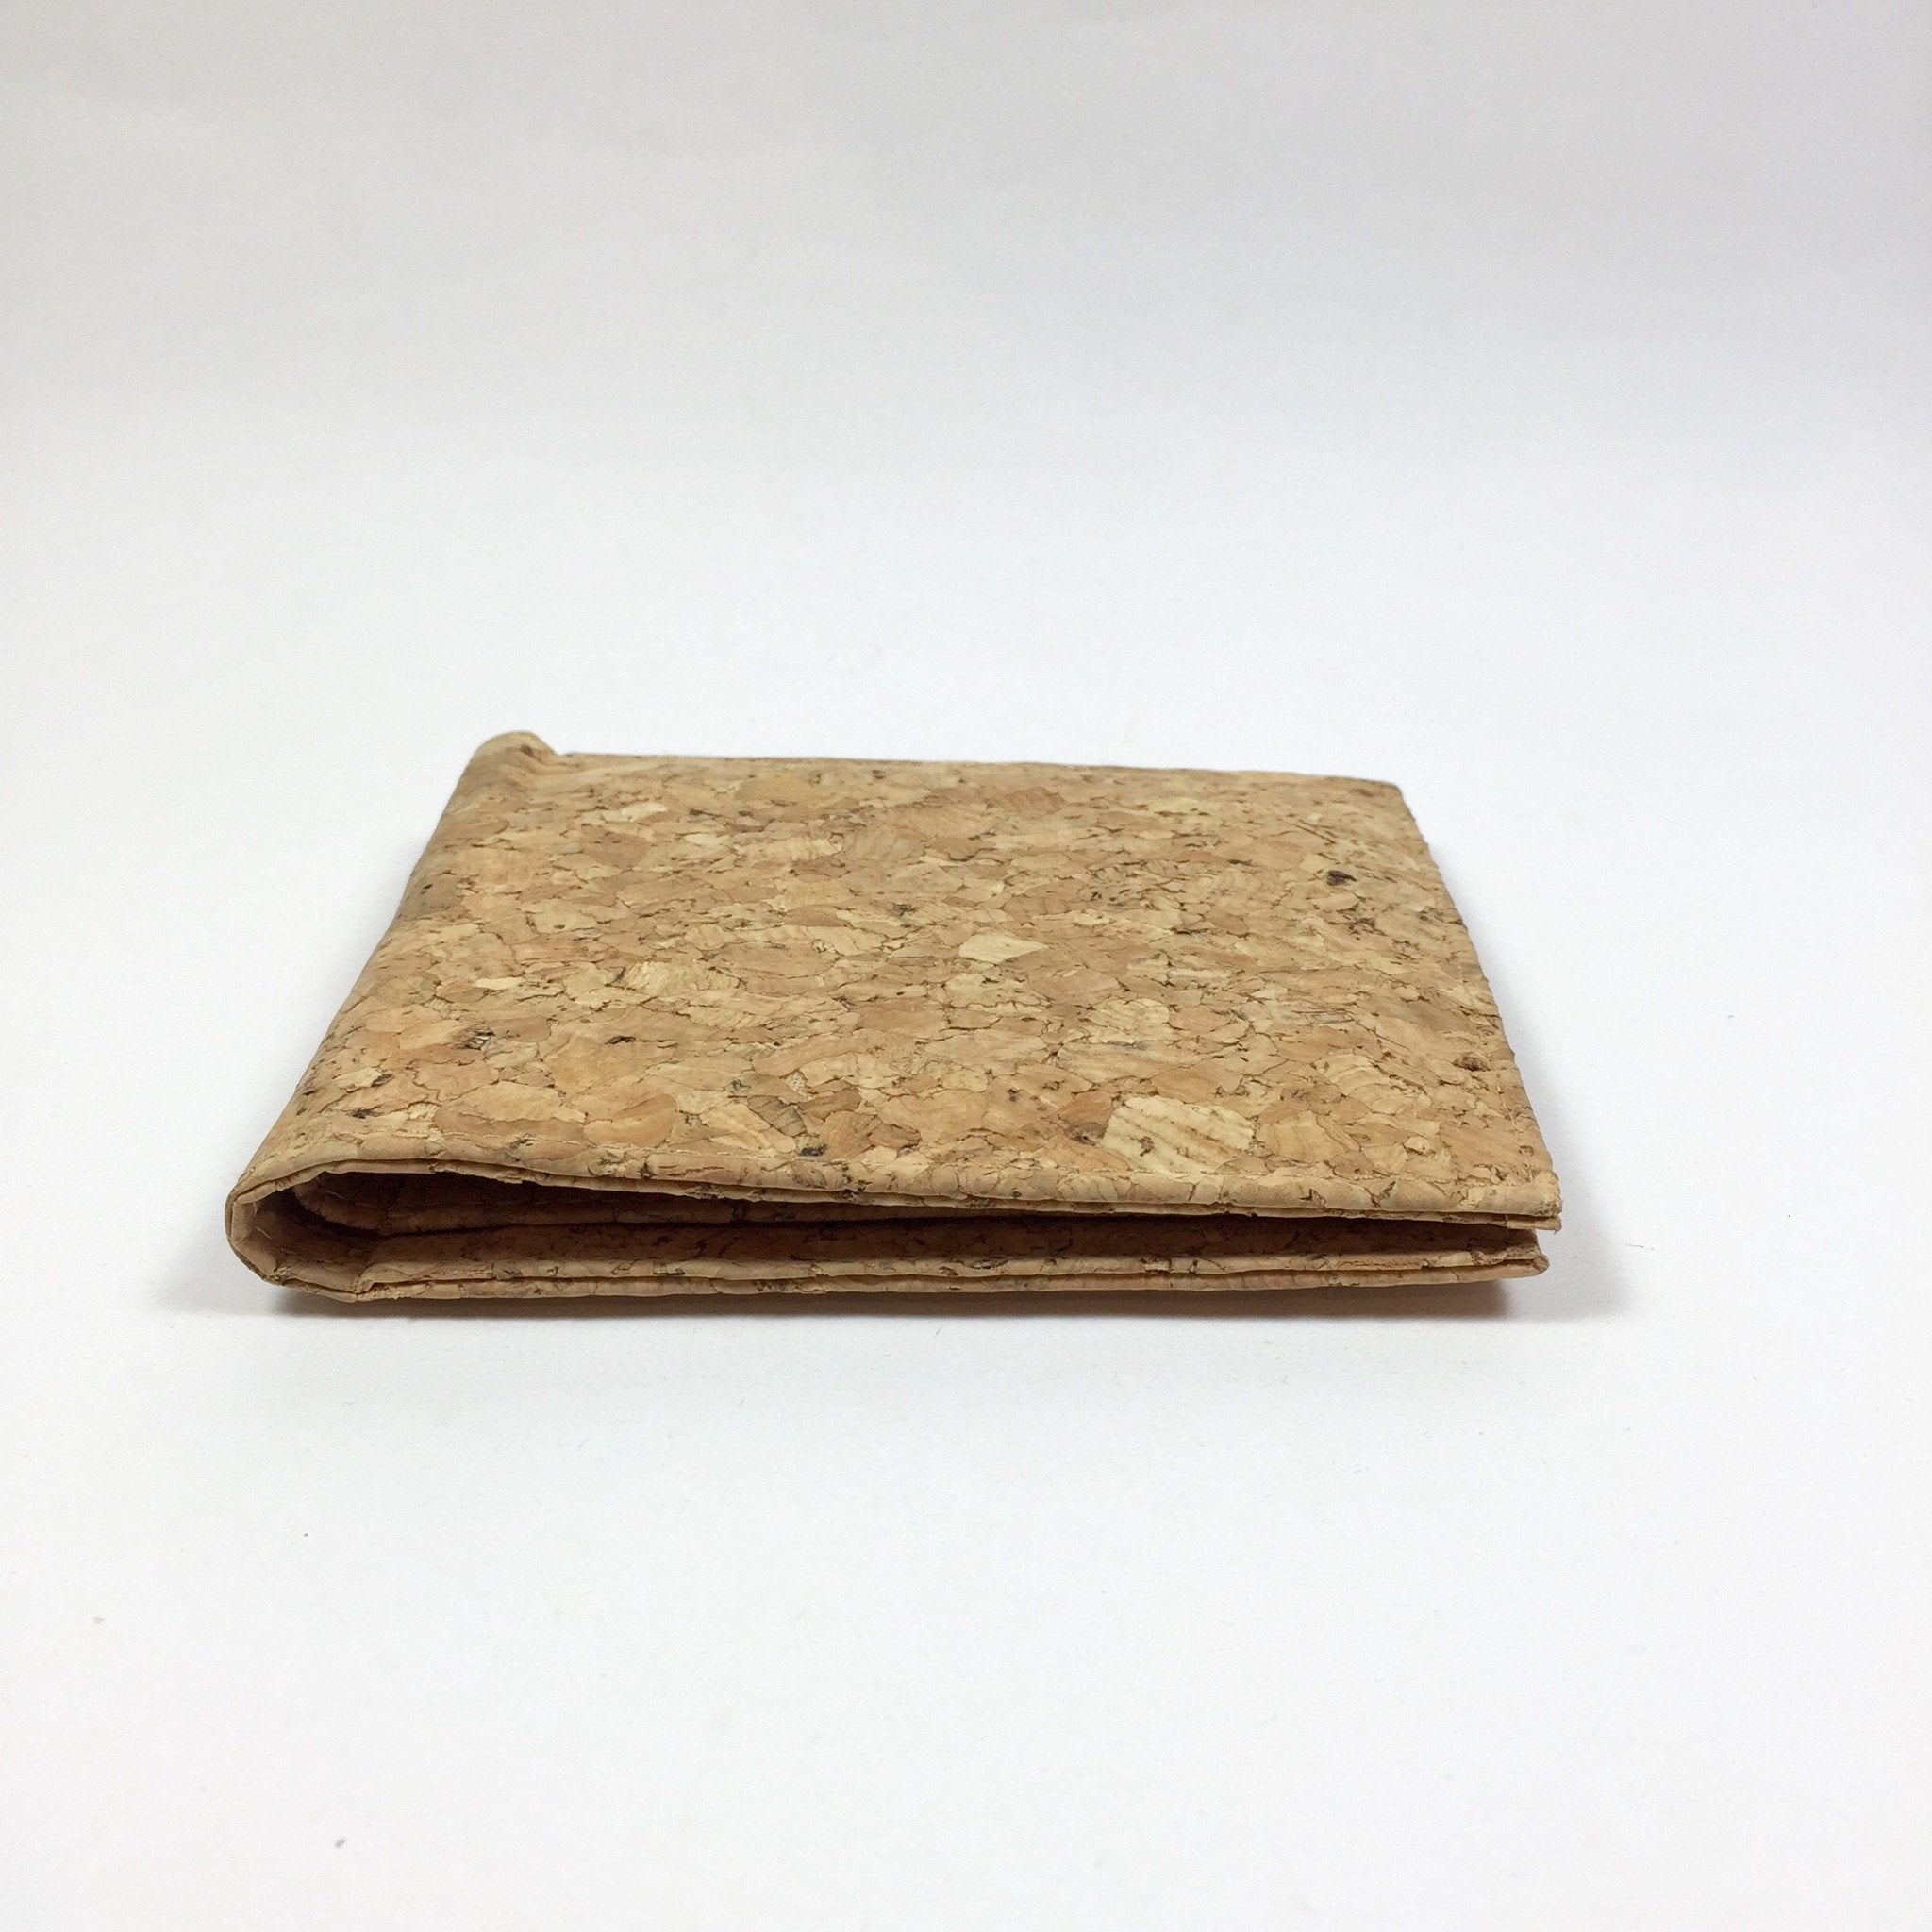 Plain Classic Henry Cork Wallet Natural Cruelty Free Ethical Vegan Recycled